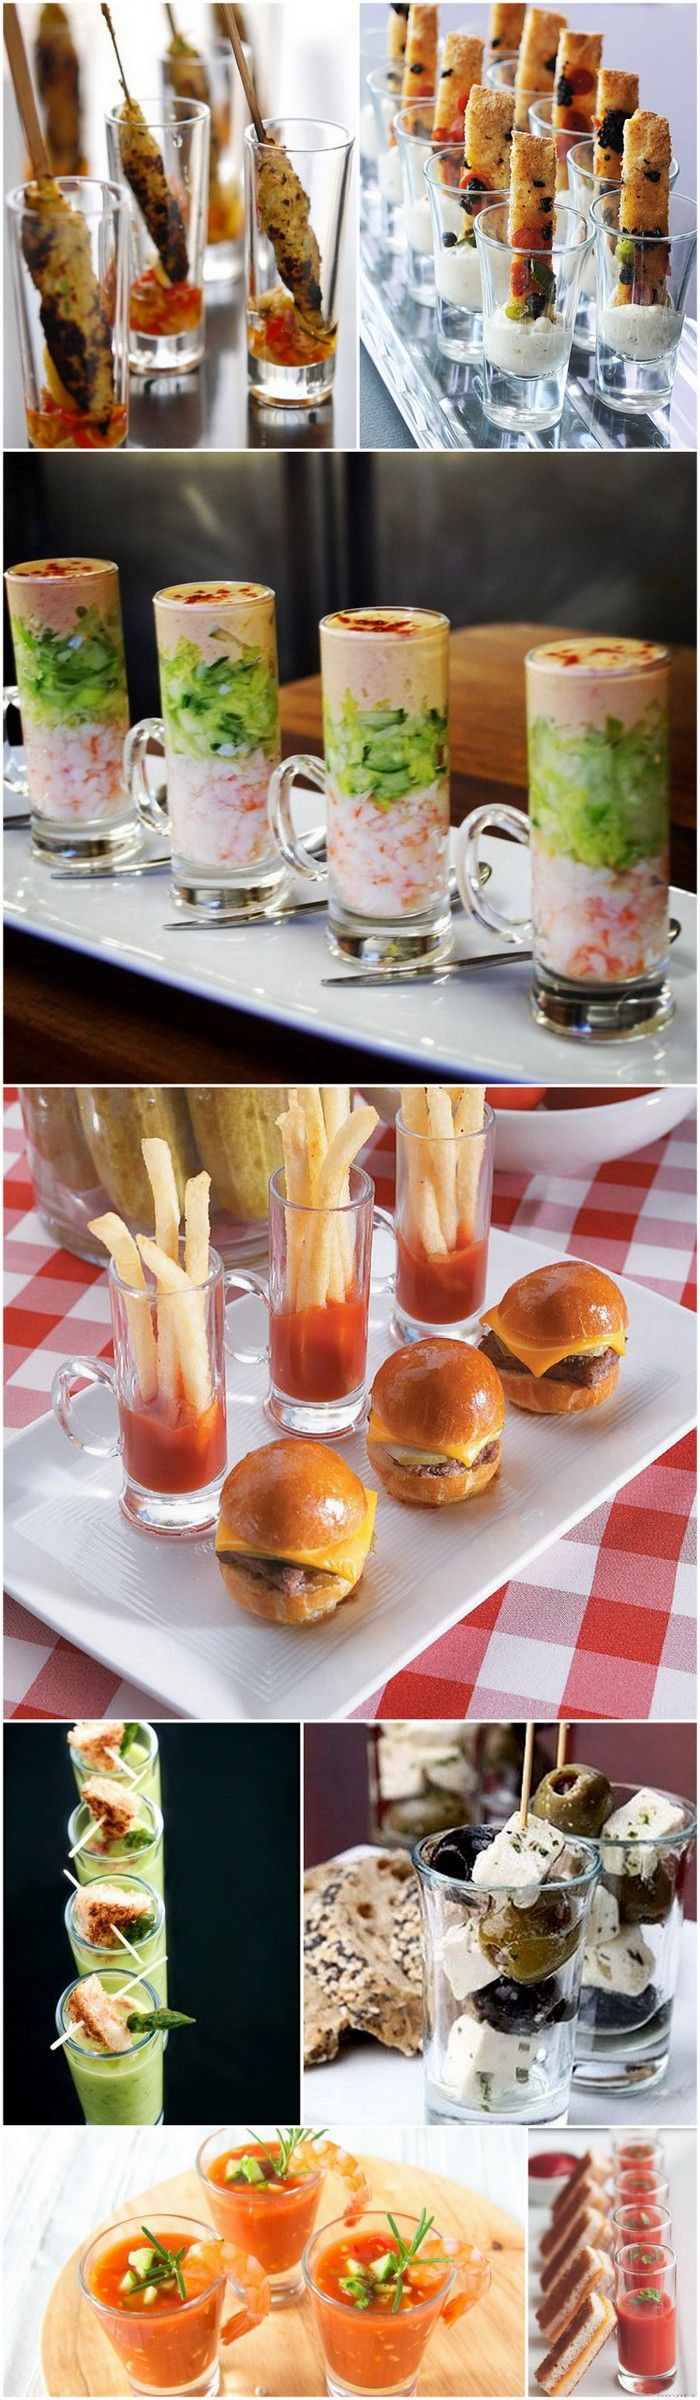 Wedding canap ideas canap s in shot glasses ideias for Canape reception